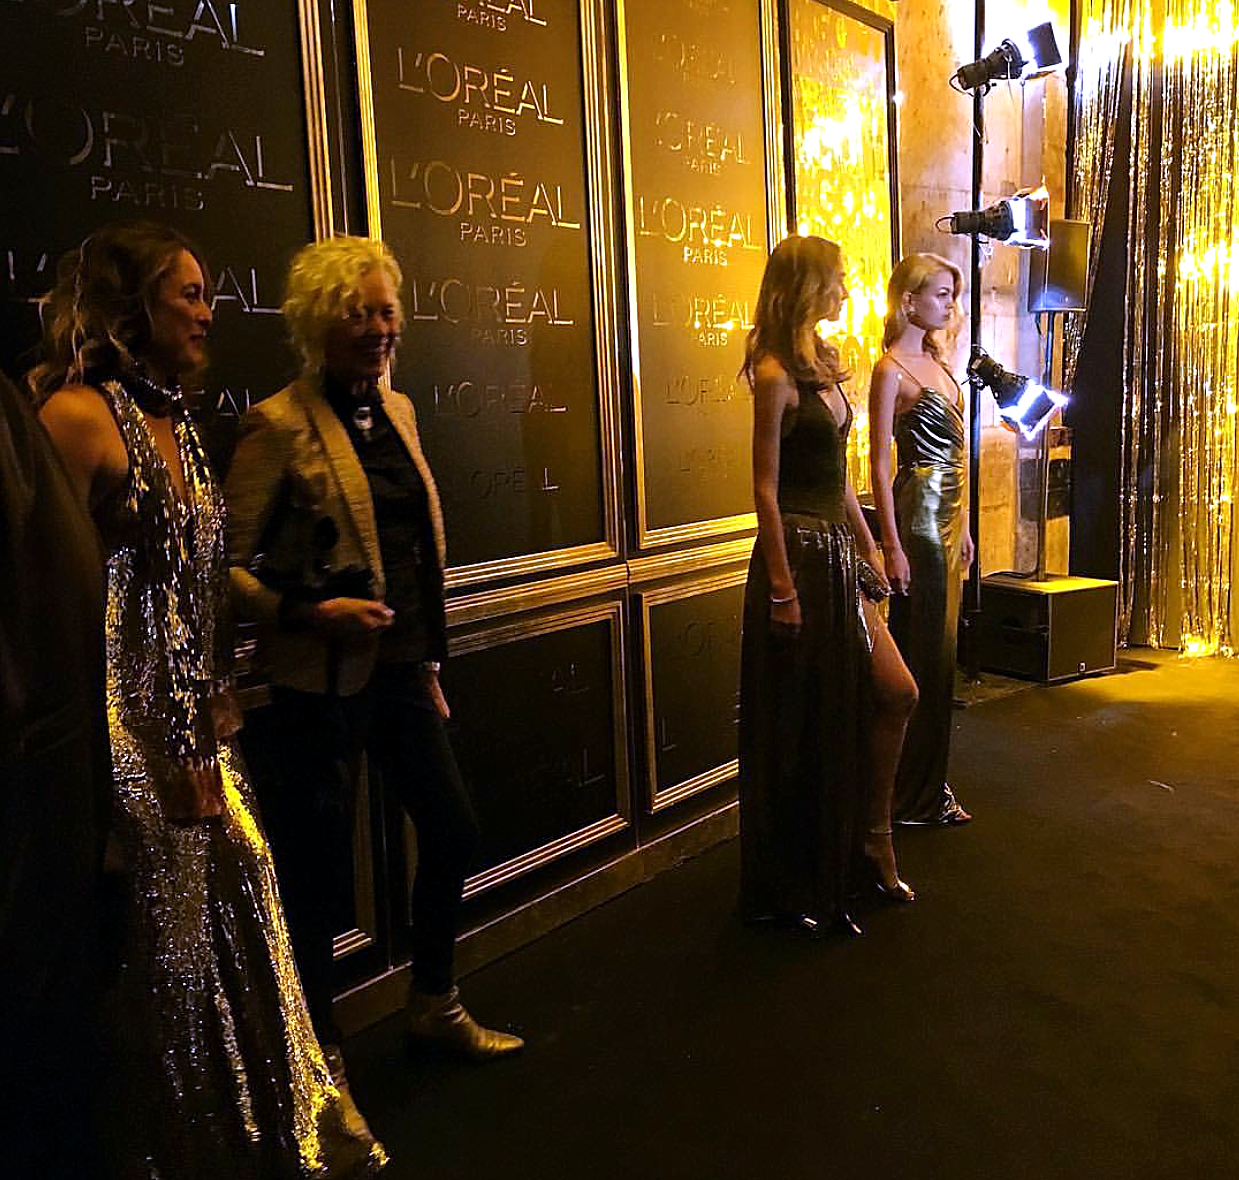 loreal-gold-obsession-party-paris-ellen-von-unwerth